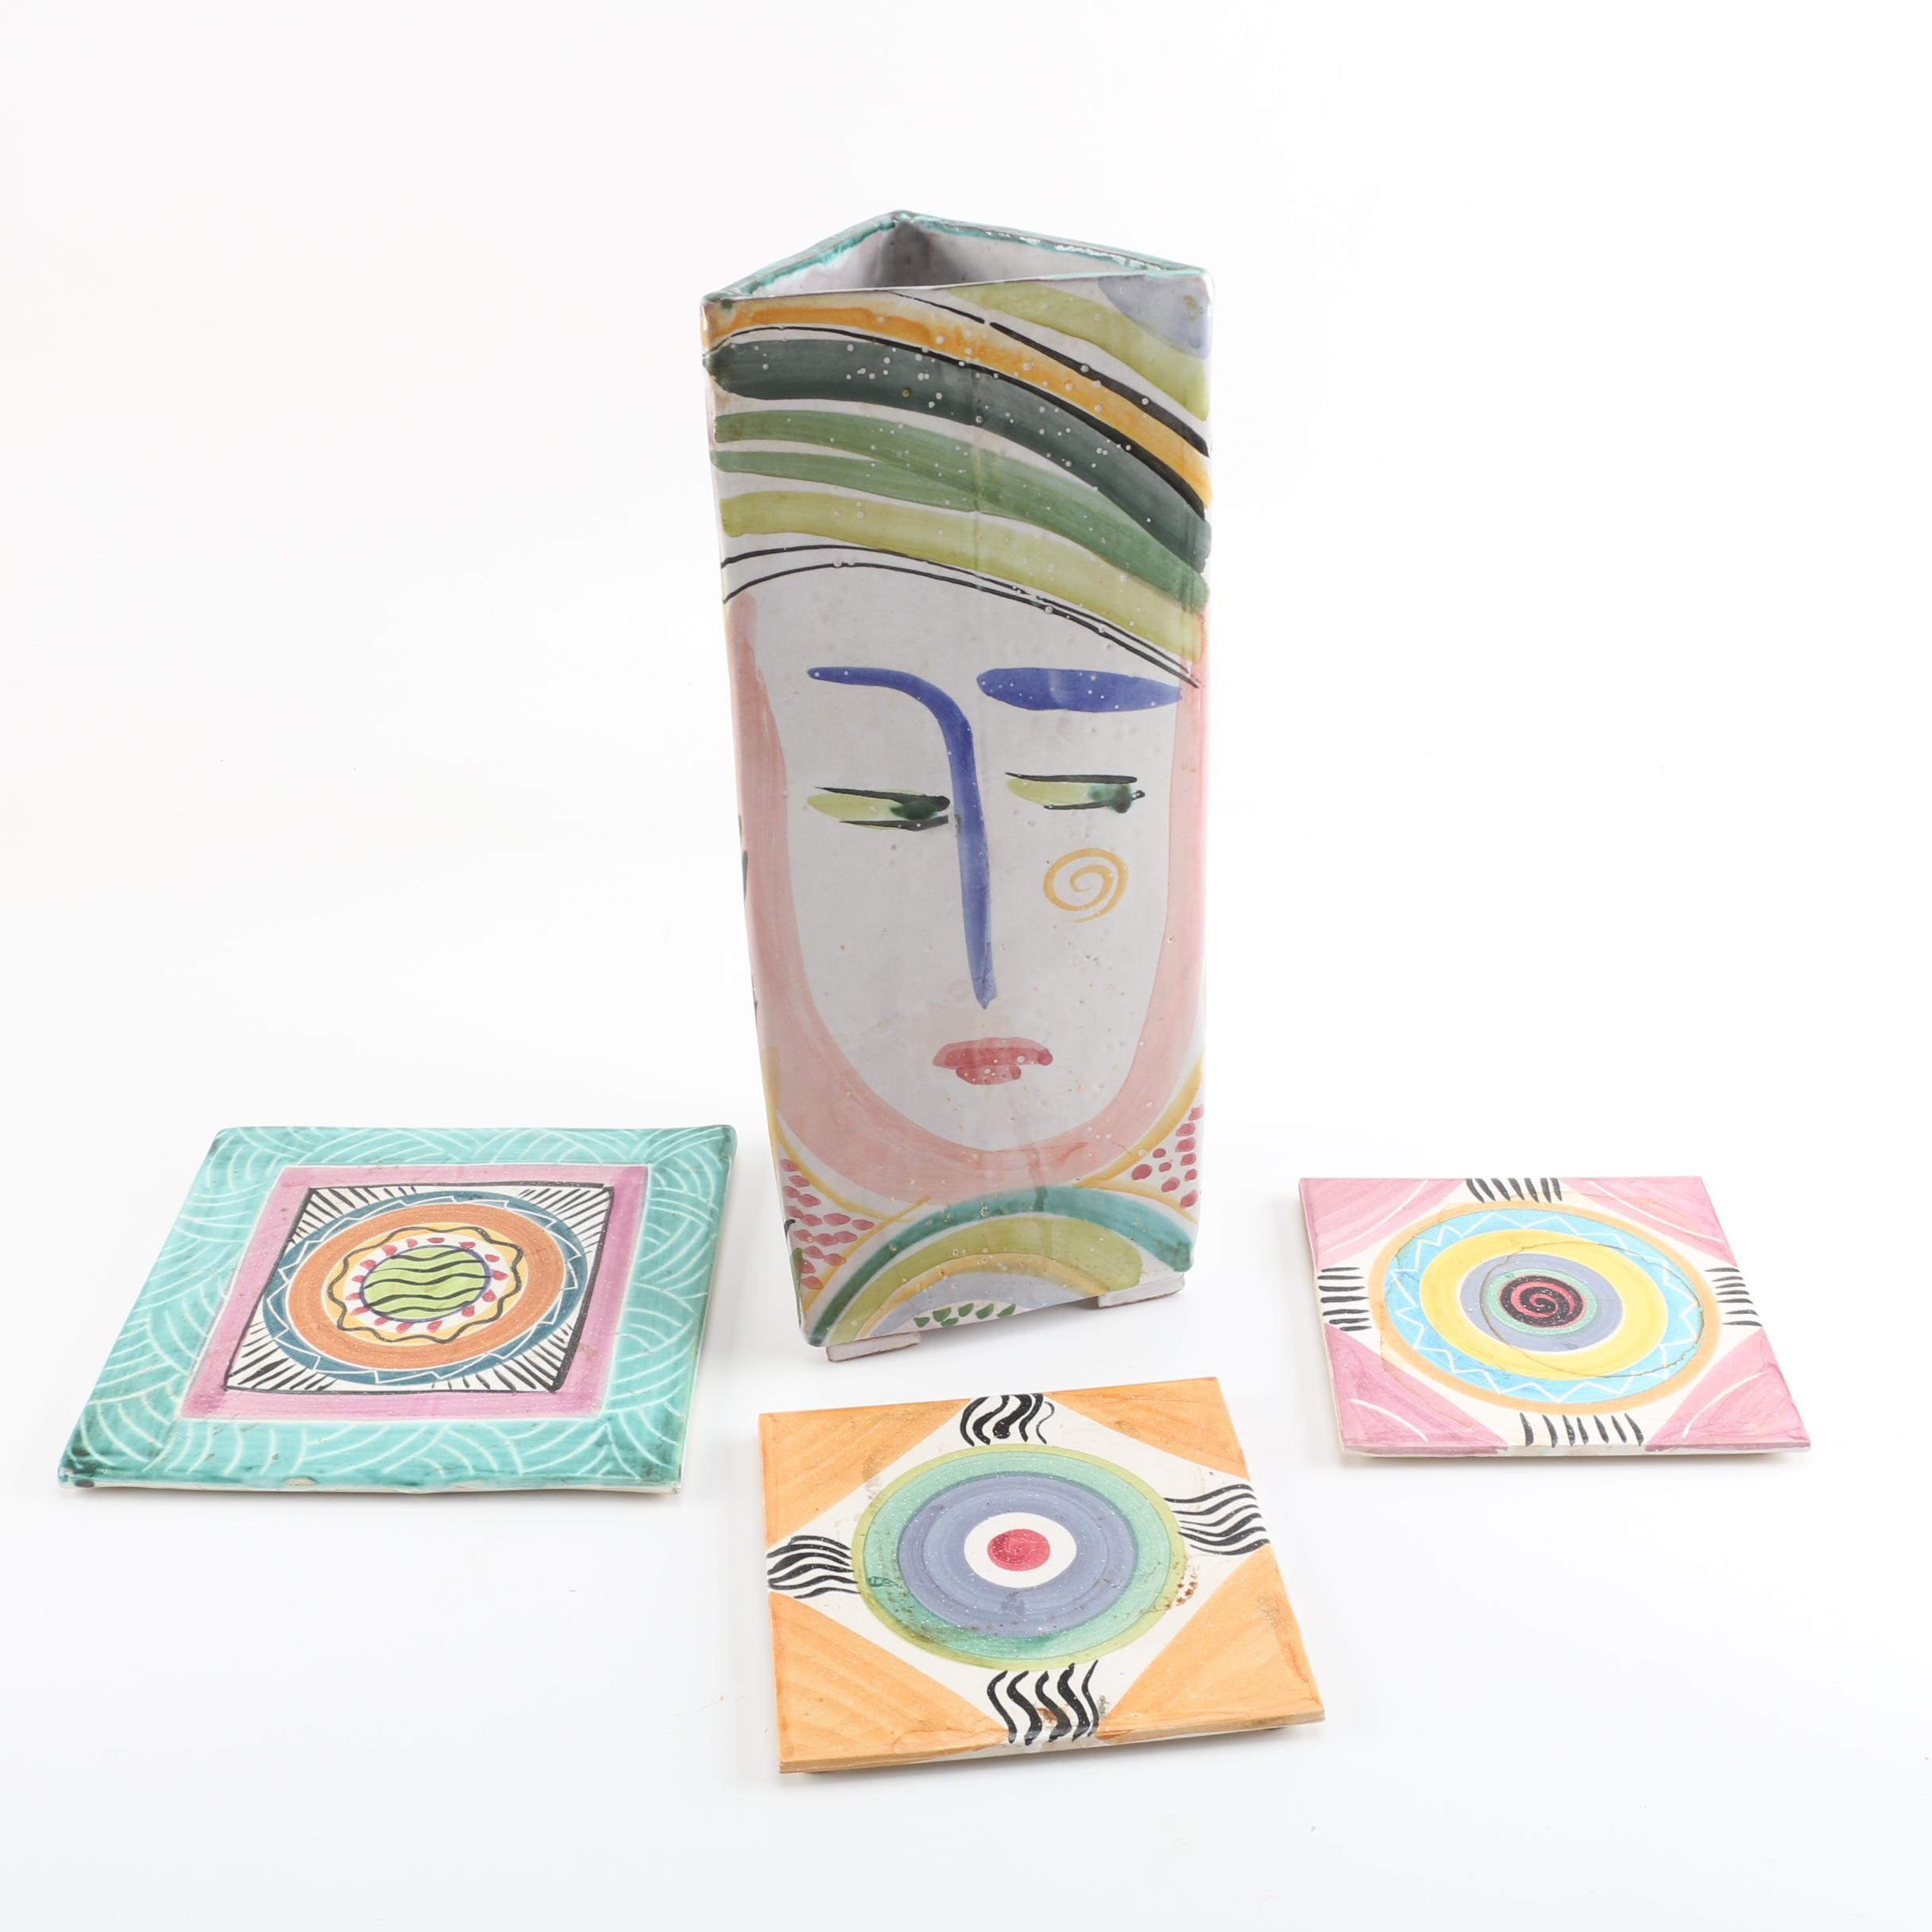 Mary George Kronstadt Earthenware Vase and A&R Johnson Tiles